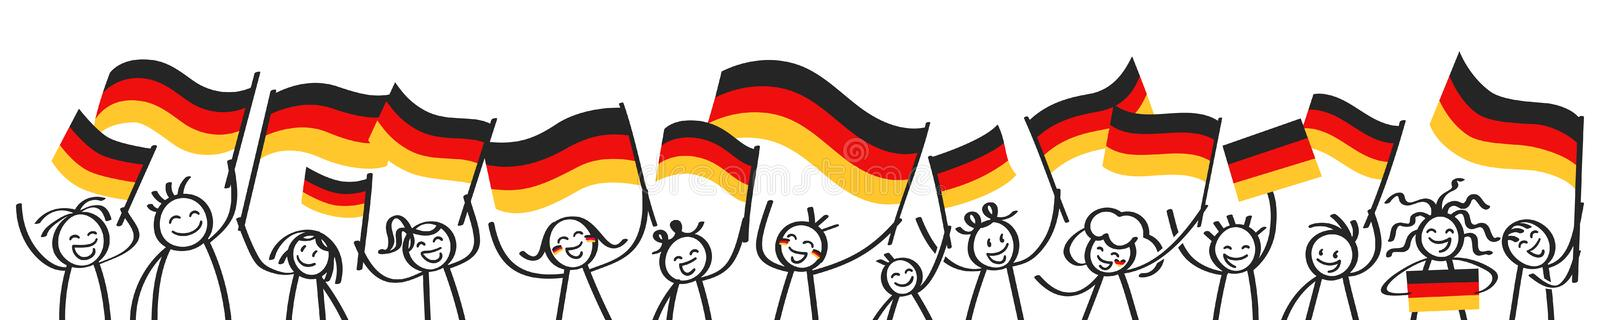 German supporters, sports fans, happy stick figures waving german flags, horizontal banner royalty free illustration